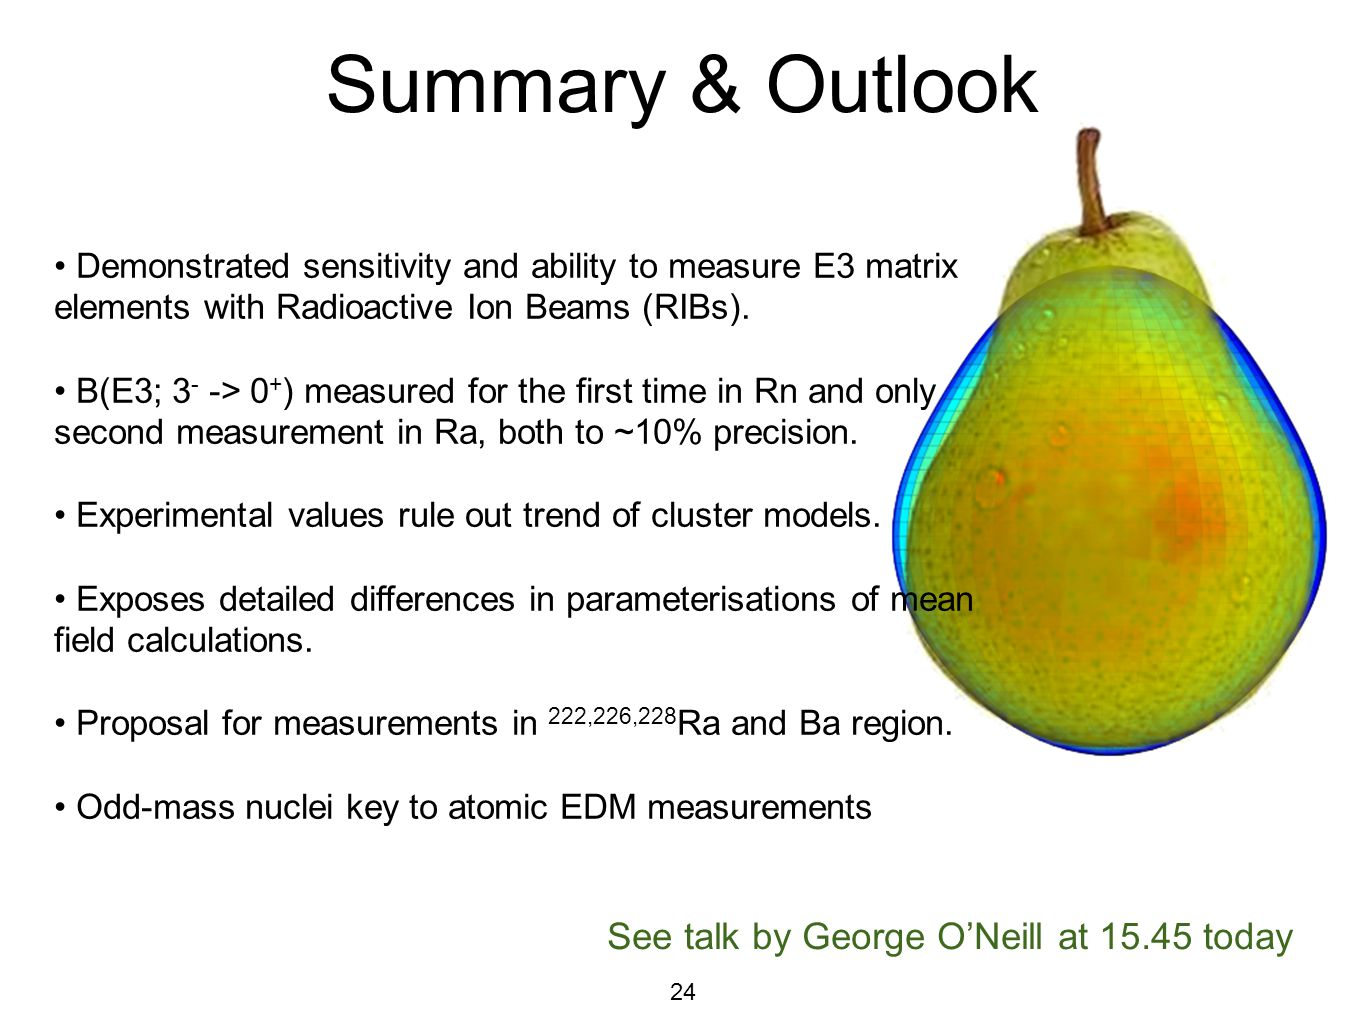 Summary & Outlook See talk by George O'Neill at 15.45 today